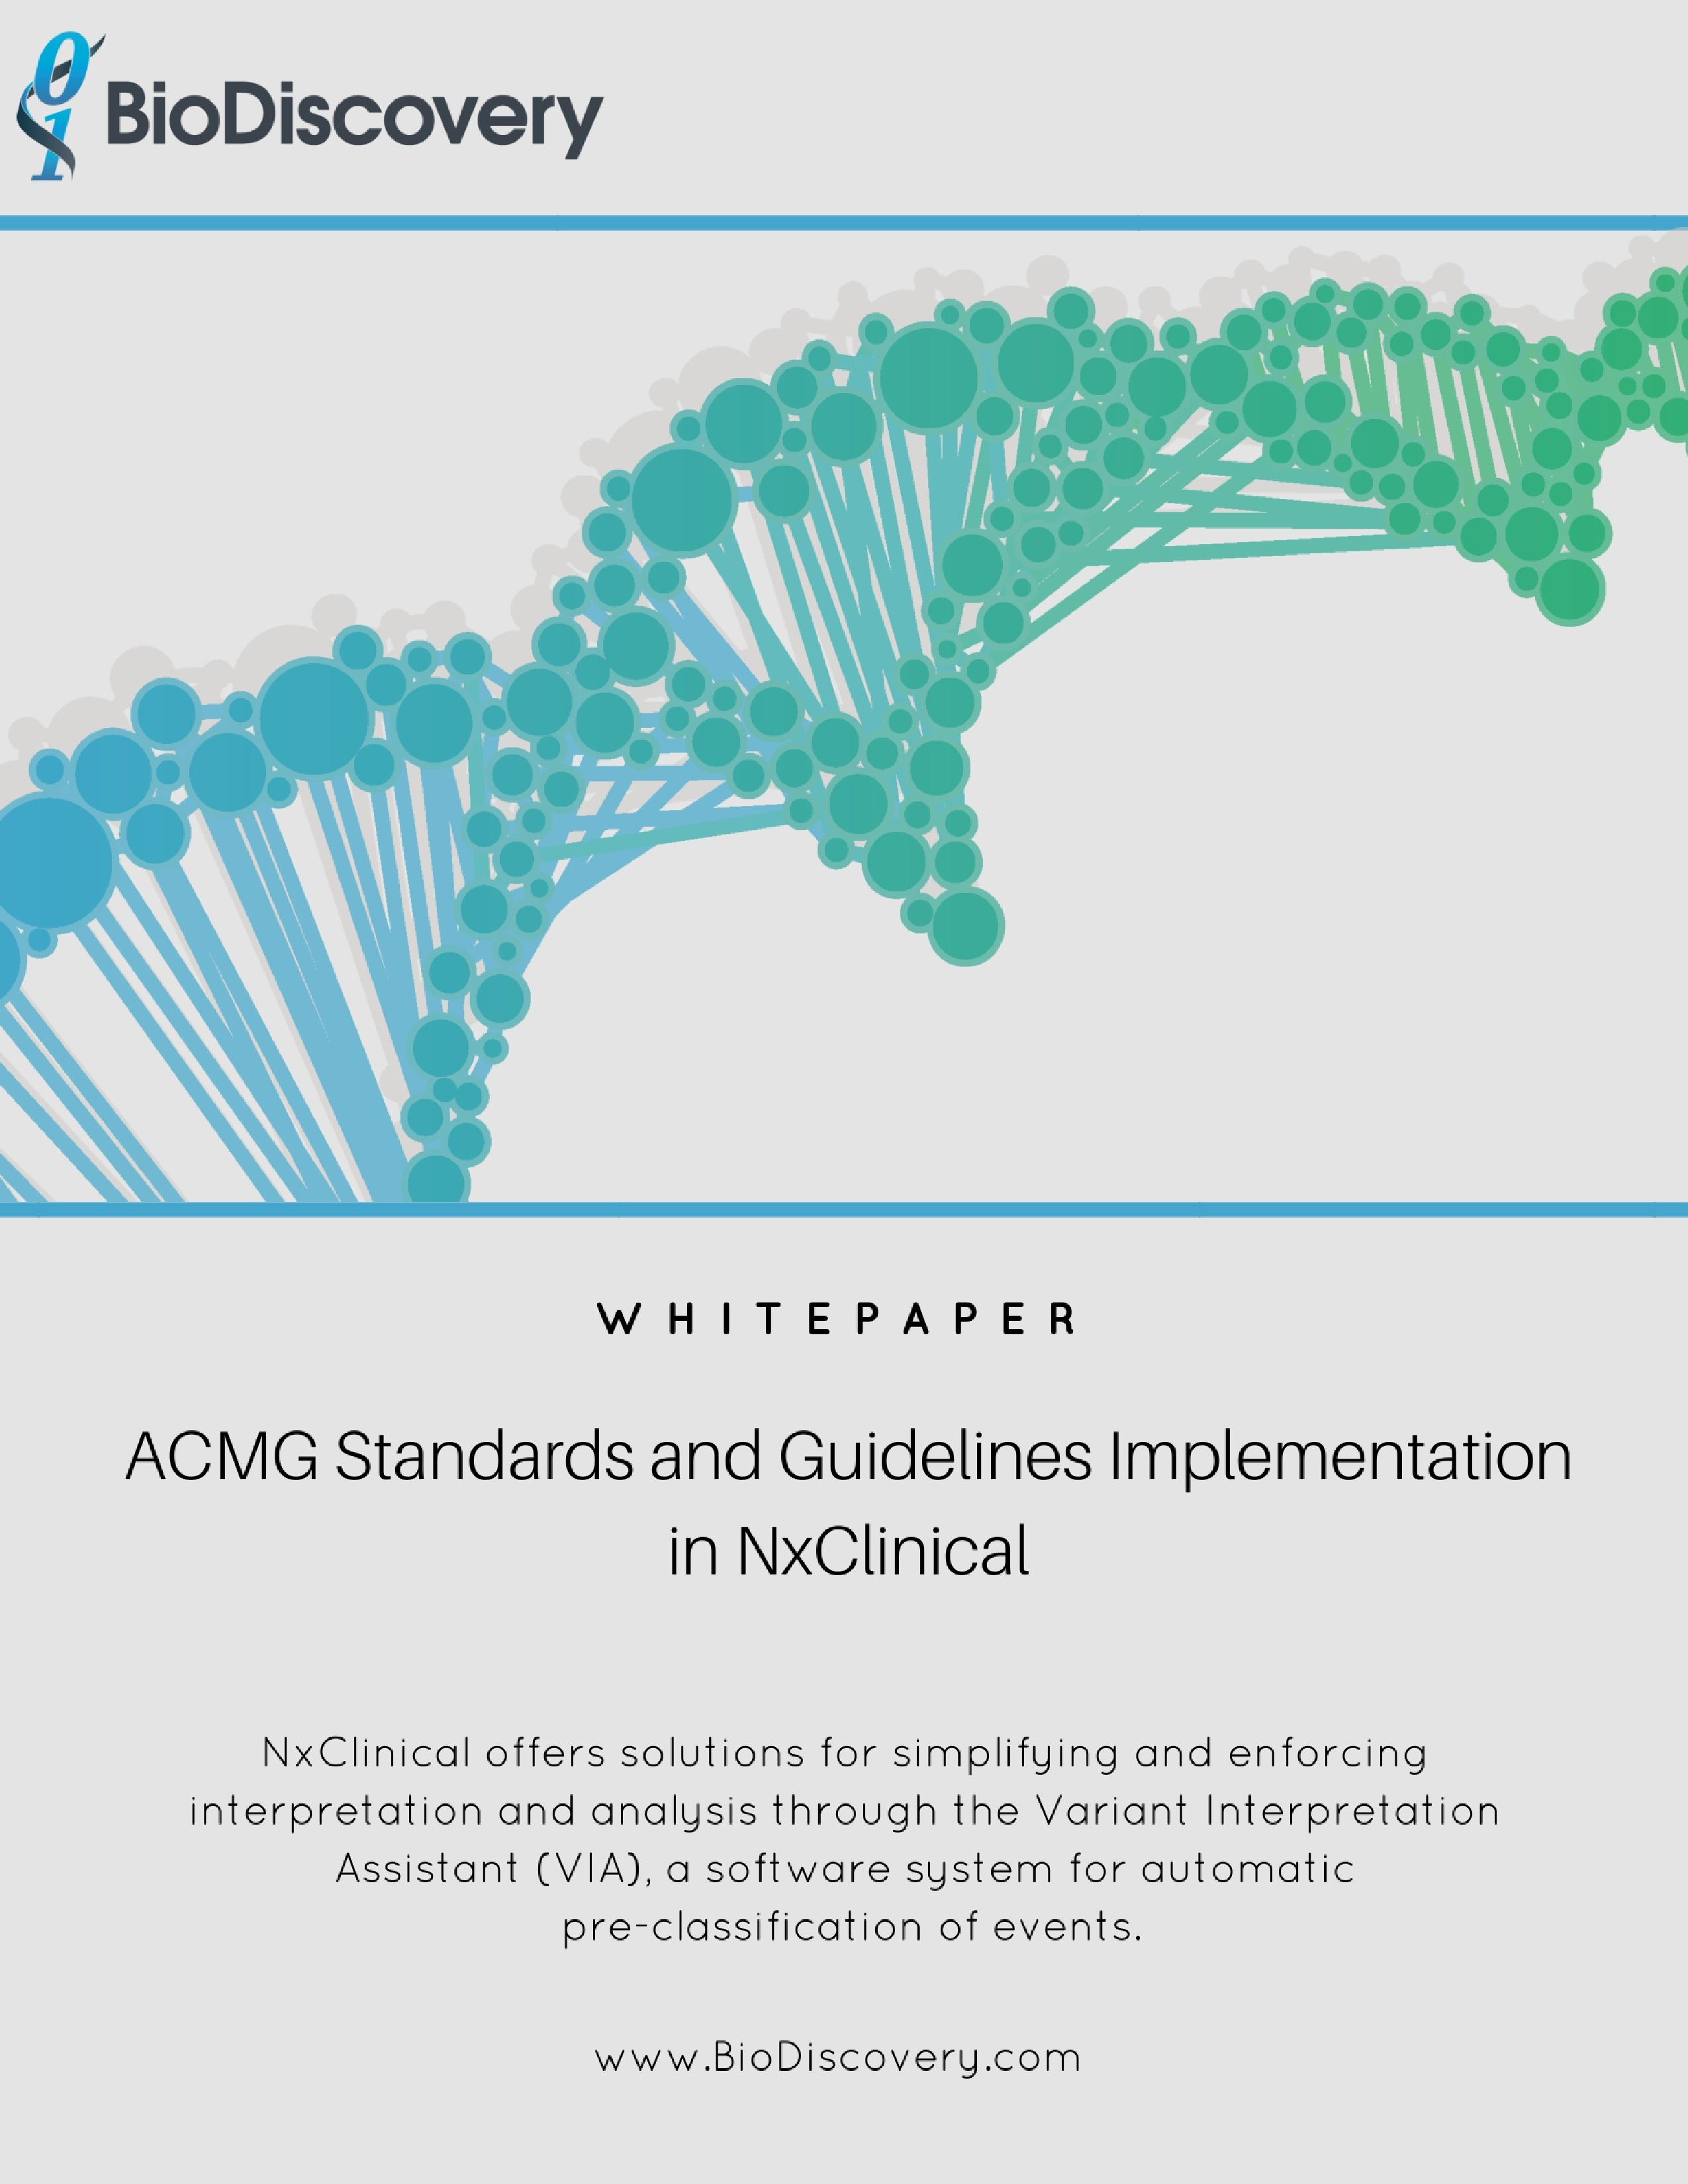 ACMG Standards and Guidelines Implementation in NxClinical_Whitepaper Cover Page